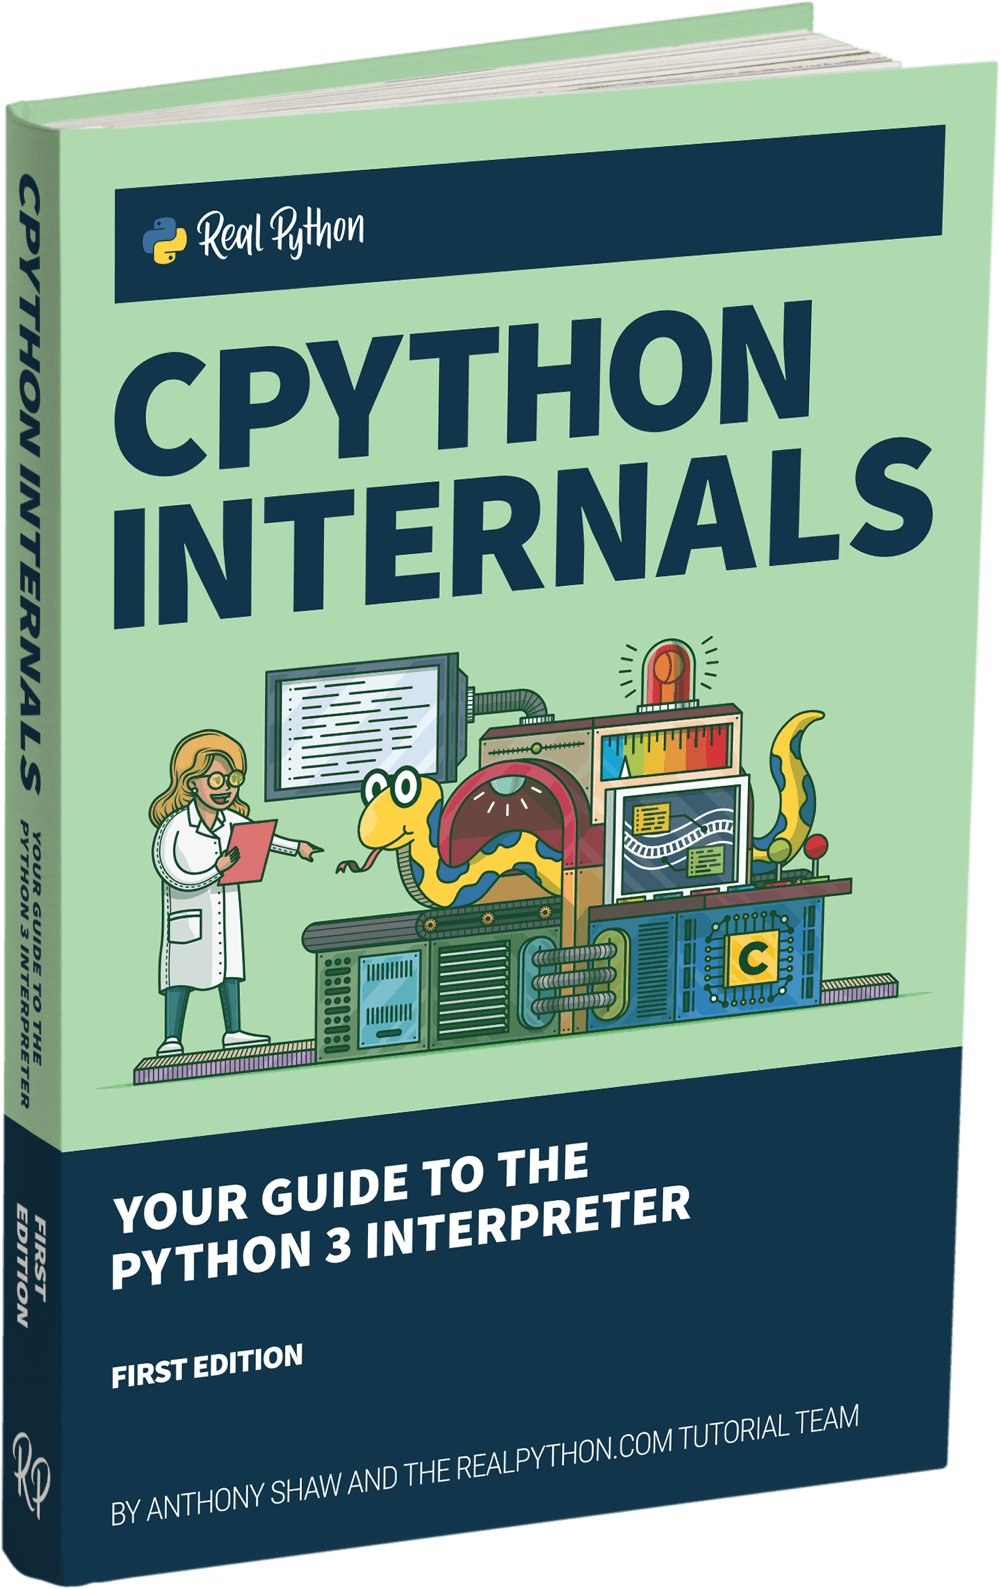 CPython Internals: Your Guide to the Python 3 Interpreter